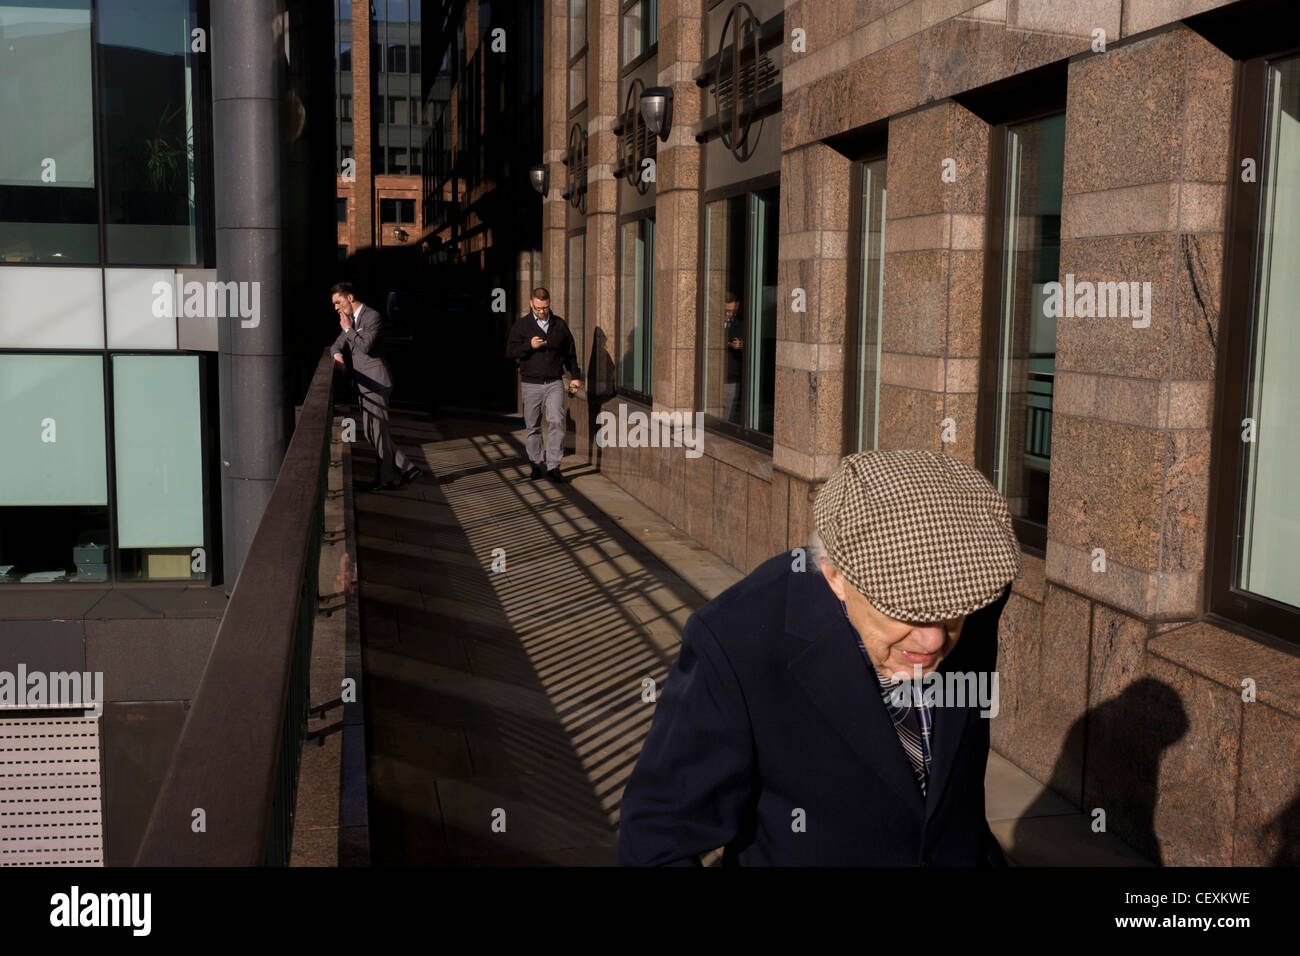 Elderly man walks along modern walkway, past a youthful office worker enjoying a thoughful moment in City of London. Stock Photo